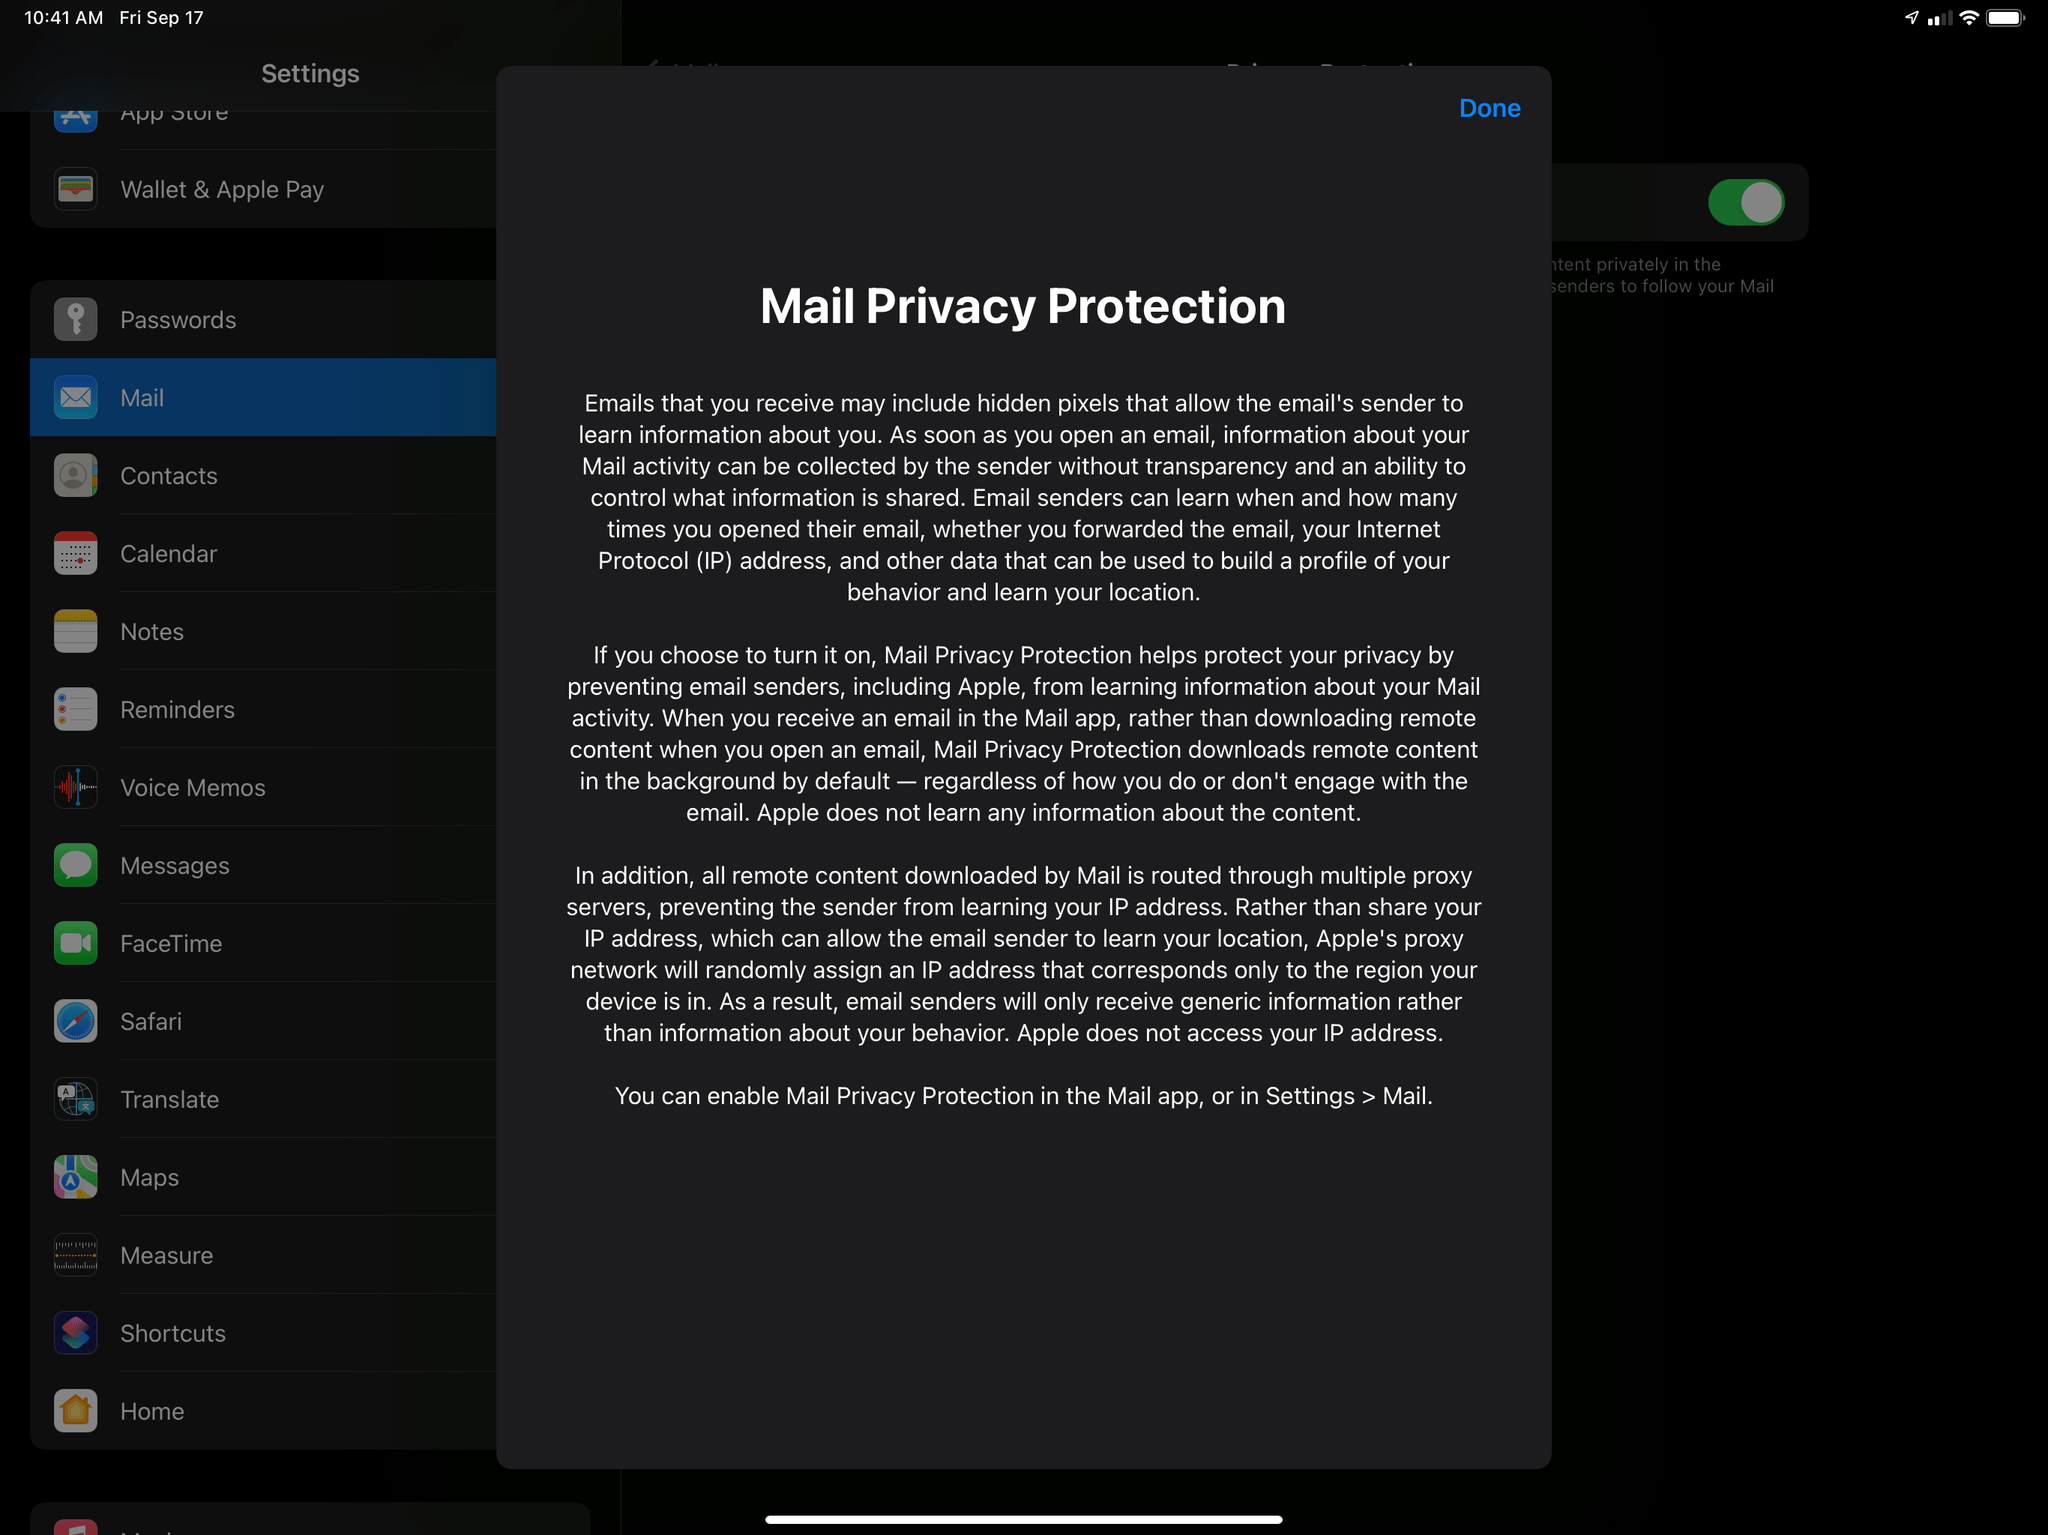 Enabling Mail Privacy Protection.